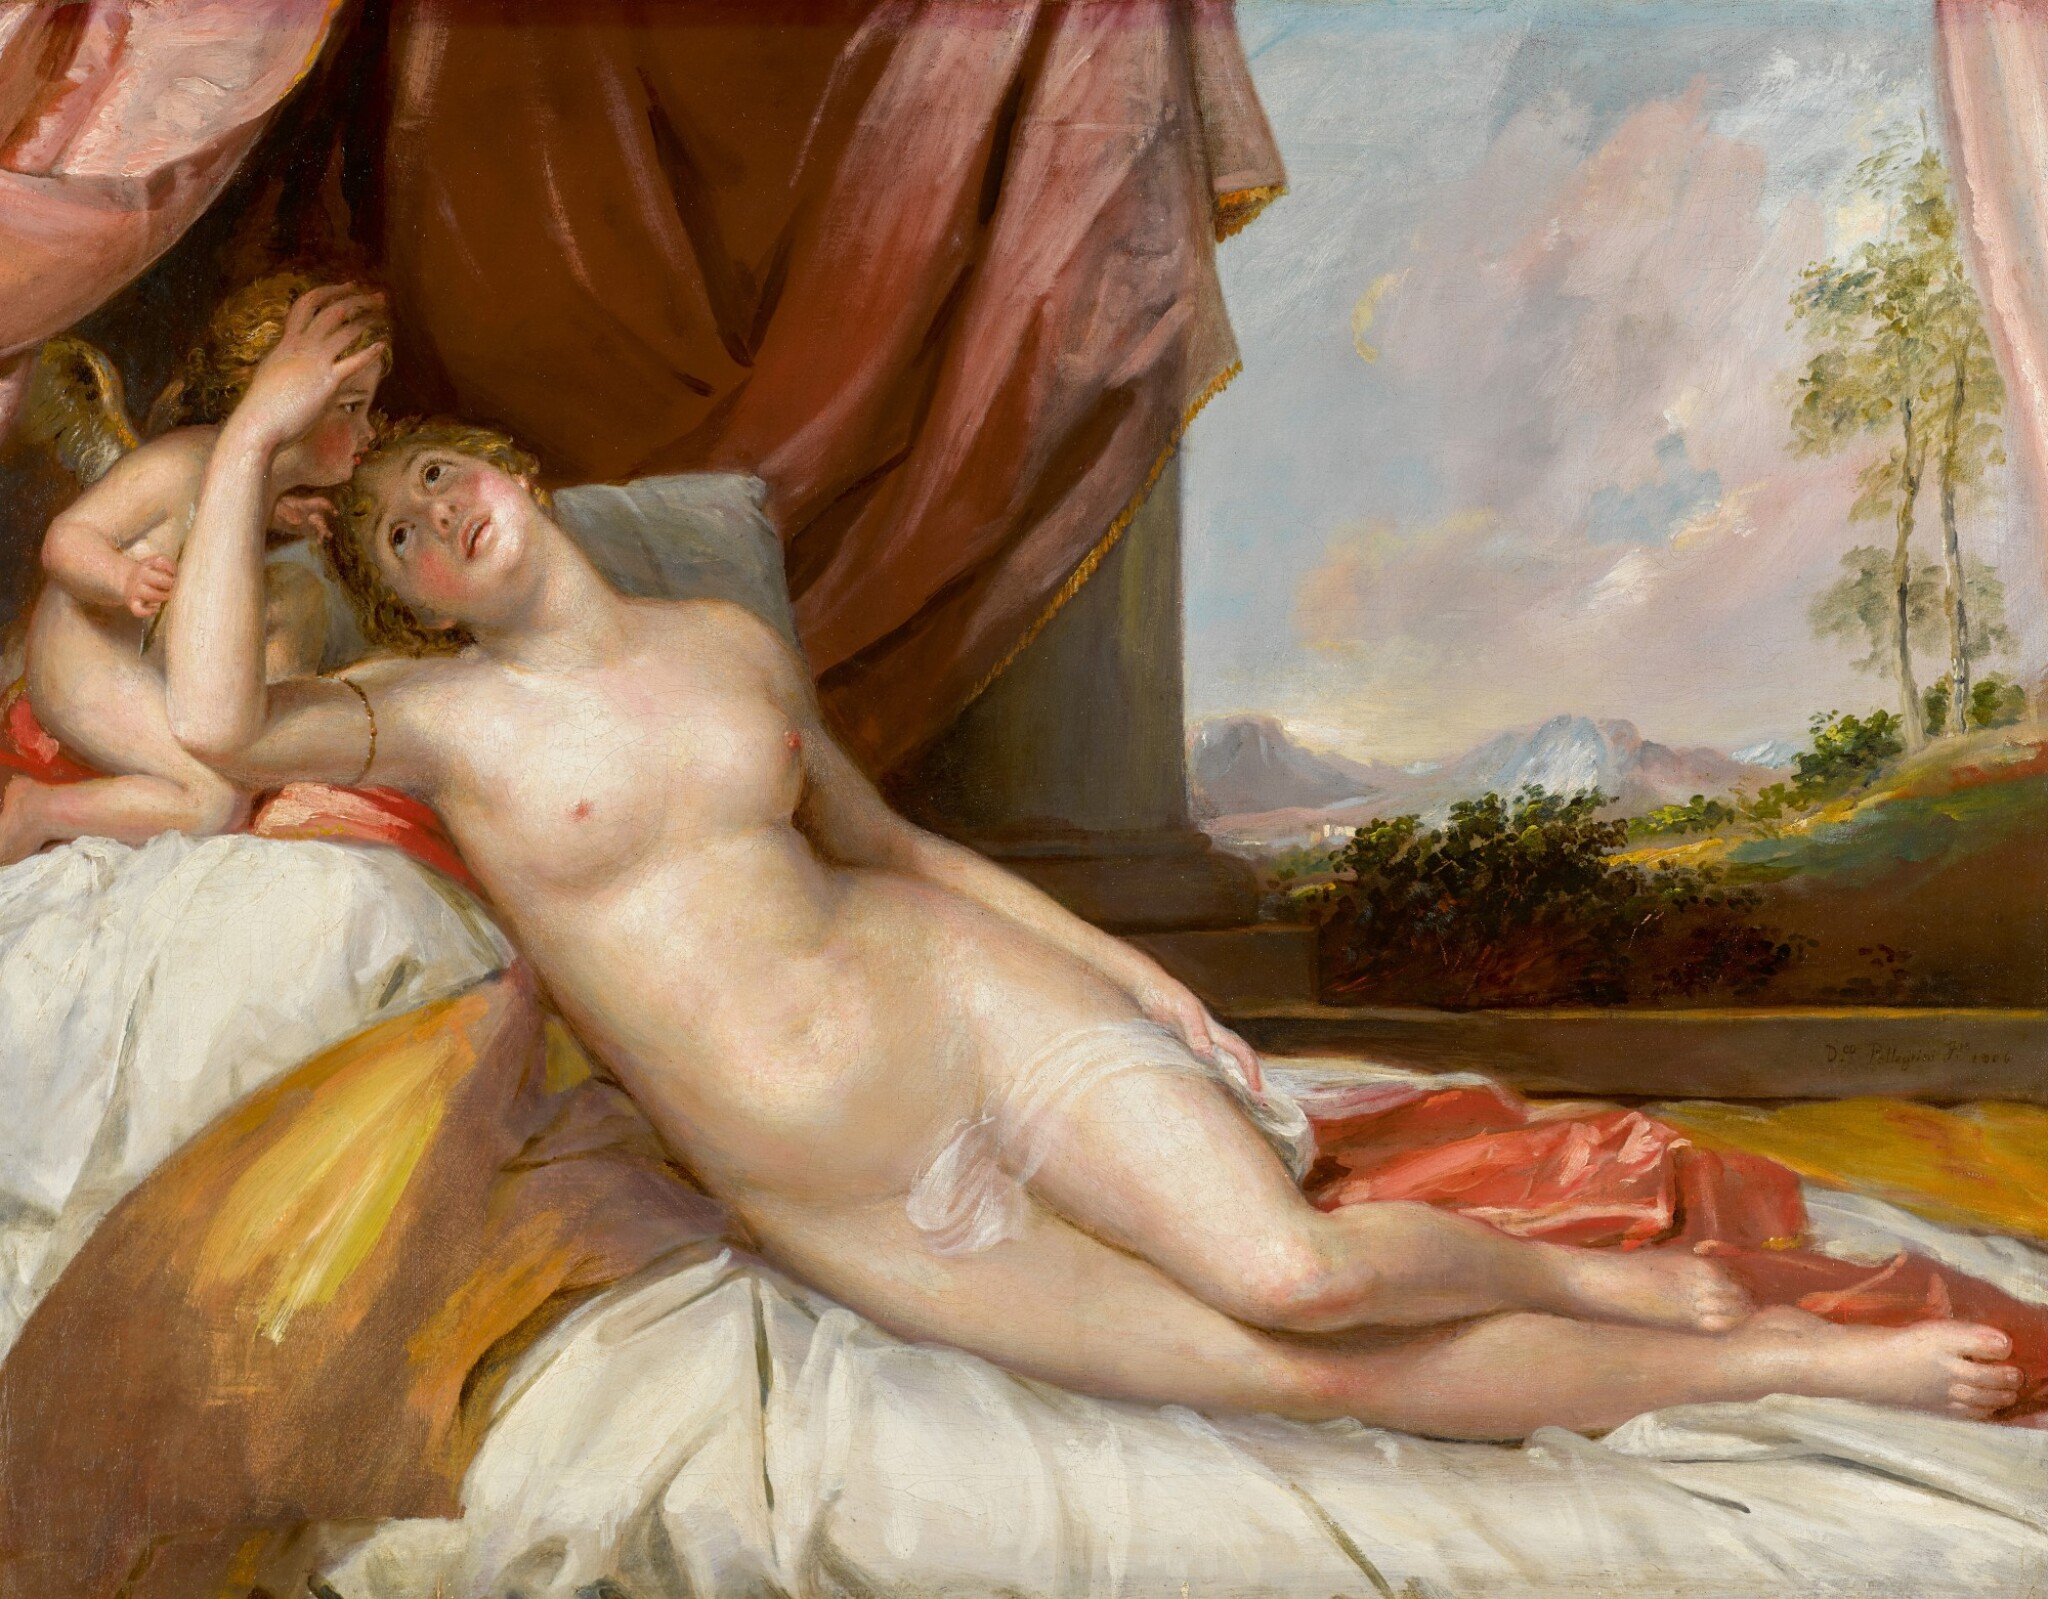 View 1 of Lot 180. Venus and Cupid.